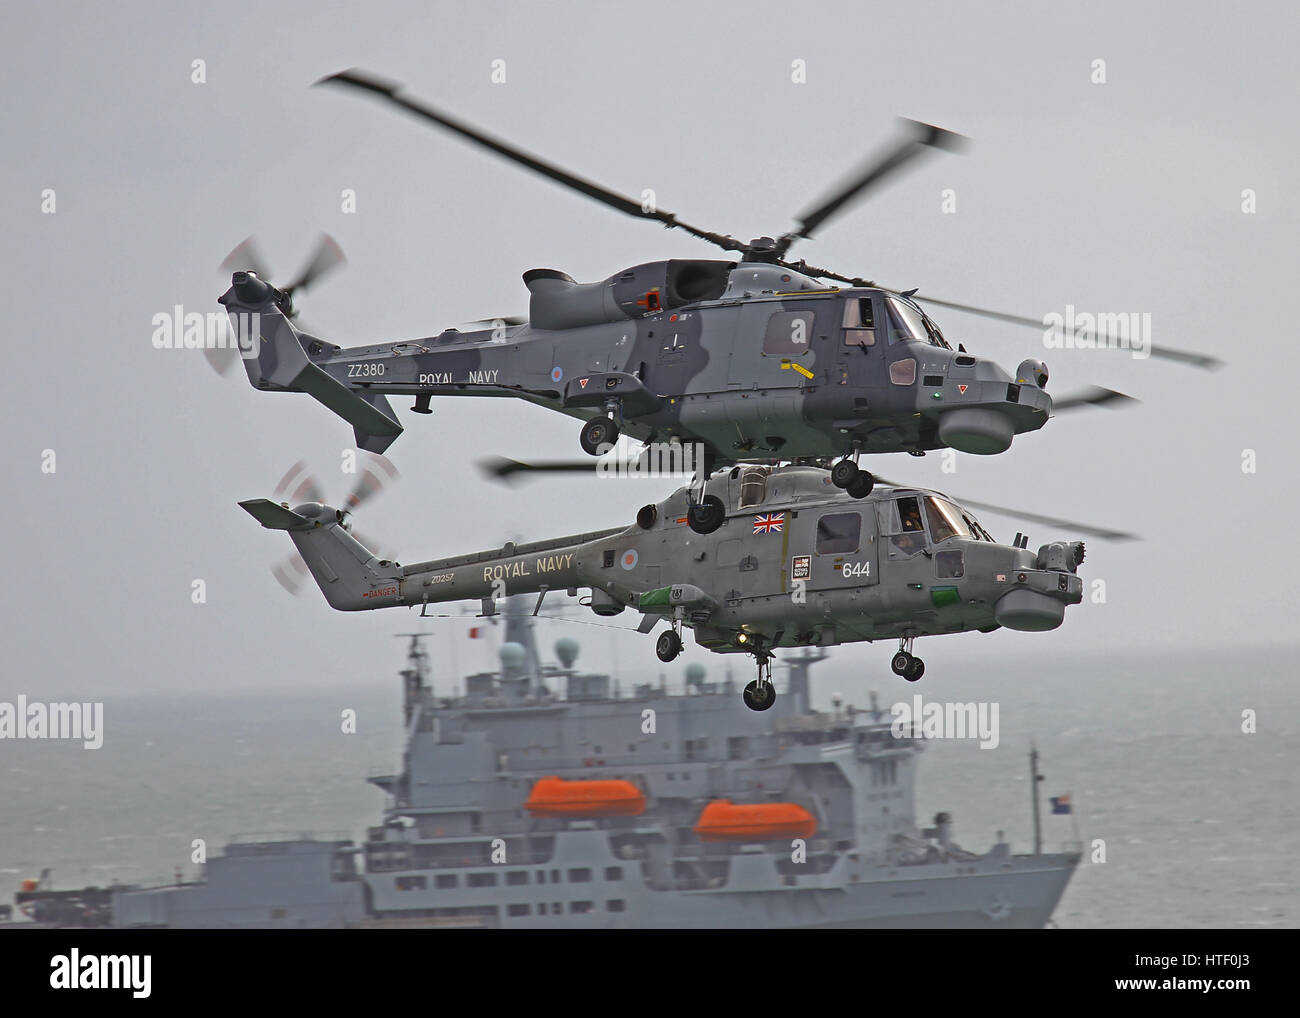 The Royal Navy Blackcats Westland Lynx HMA.8 (R) and Wildcat HMA.2 performing at Bournemouth Air Festival - Stock Image